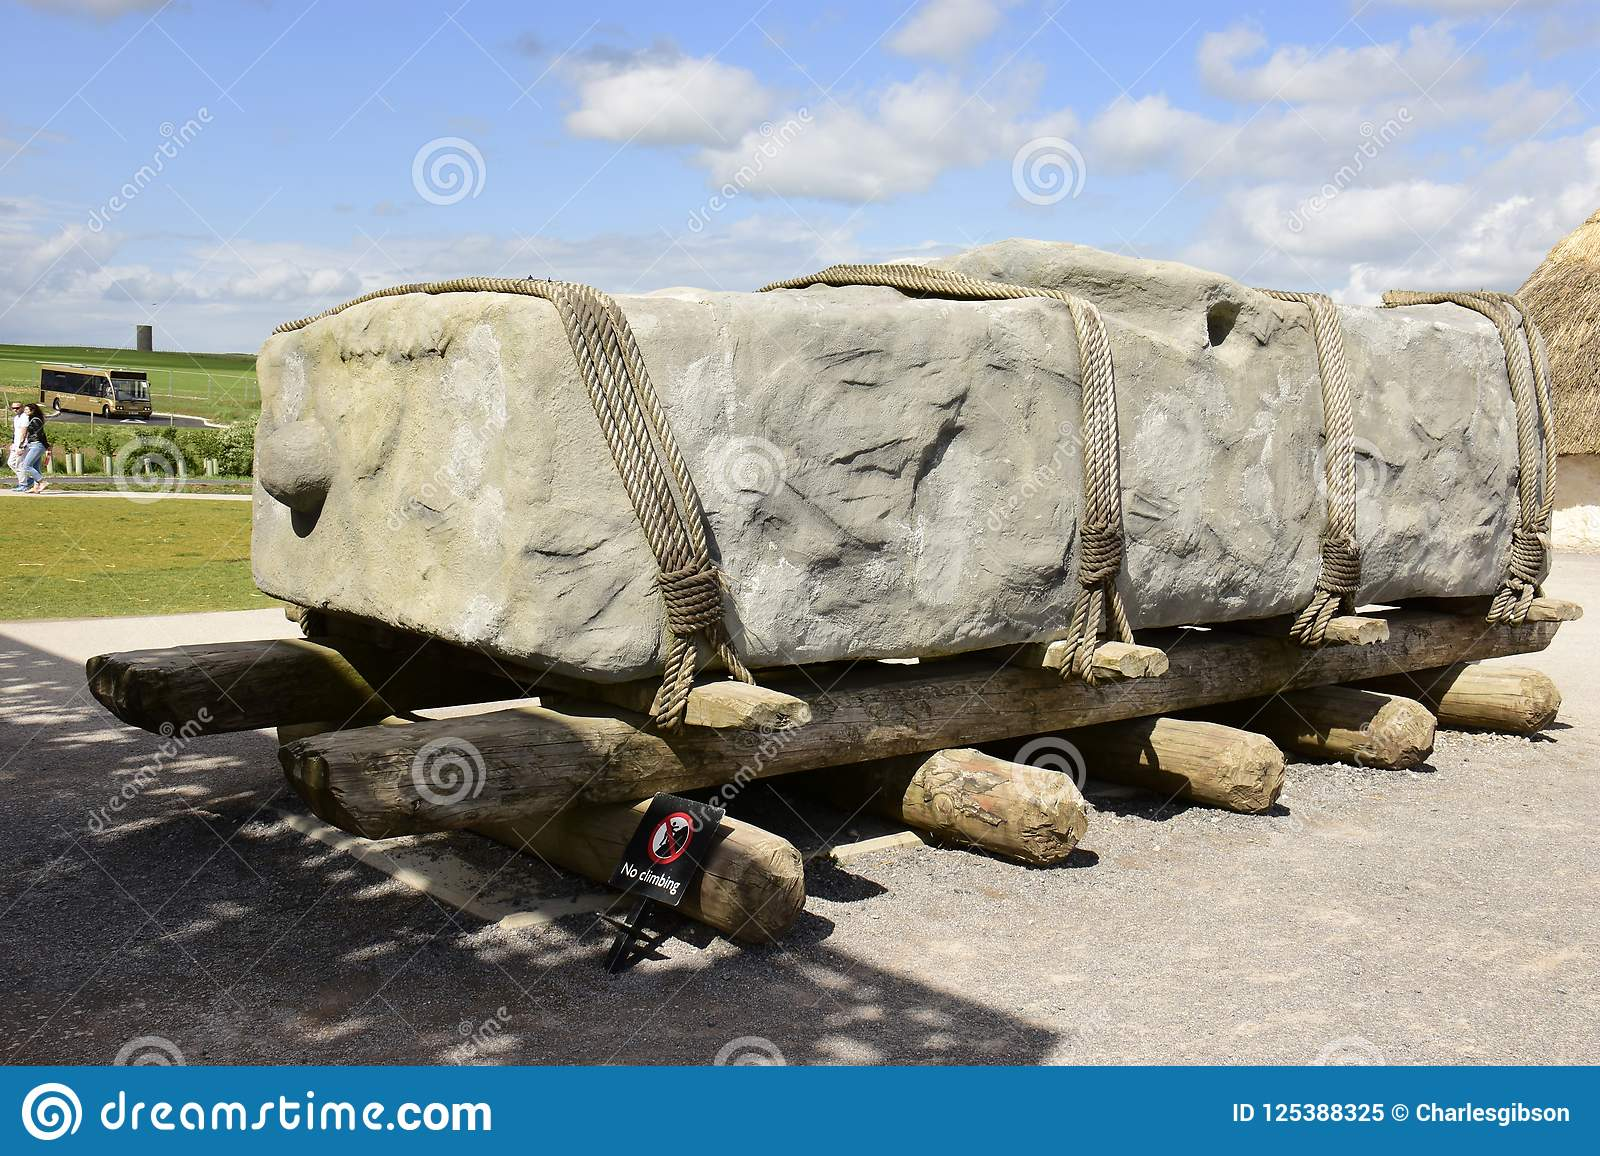 Ingenieria litica. Stone-transporting-method-display-possible-transport-carrying-large-stones-to-henge-site-southern-england-125388325